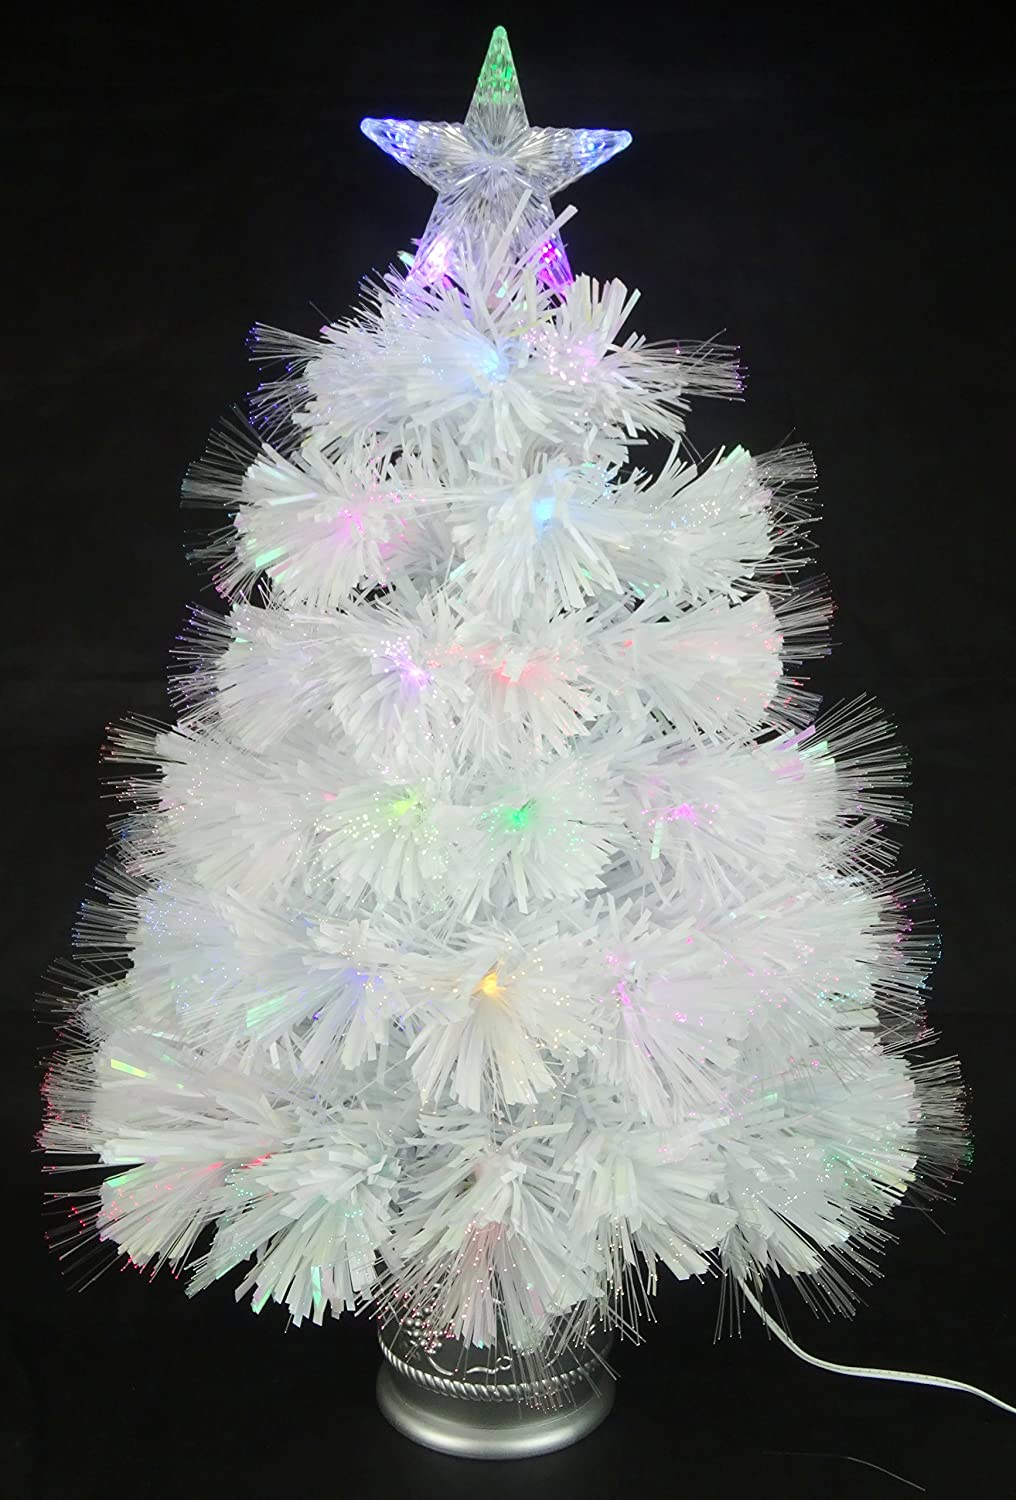 Christmas Concepts® 2ft (60cm) White Iridescent PVC Fibre Optic Christmas Tree With Colour Changing LED Lights